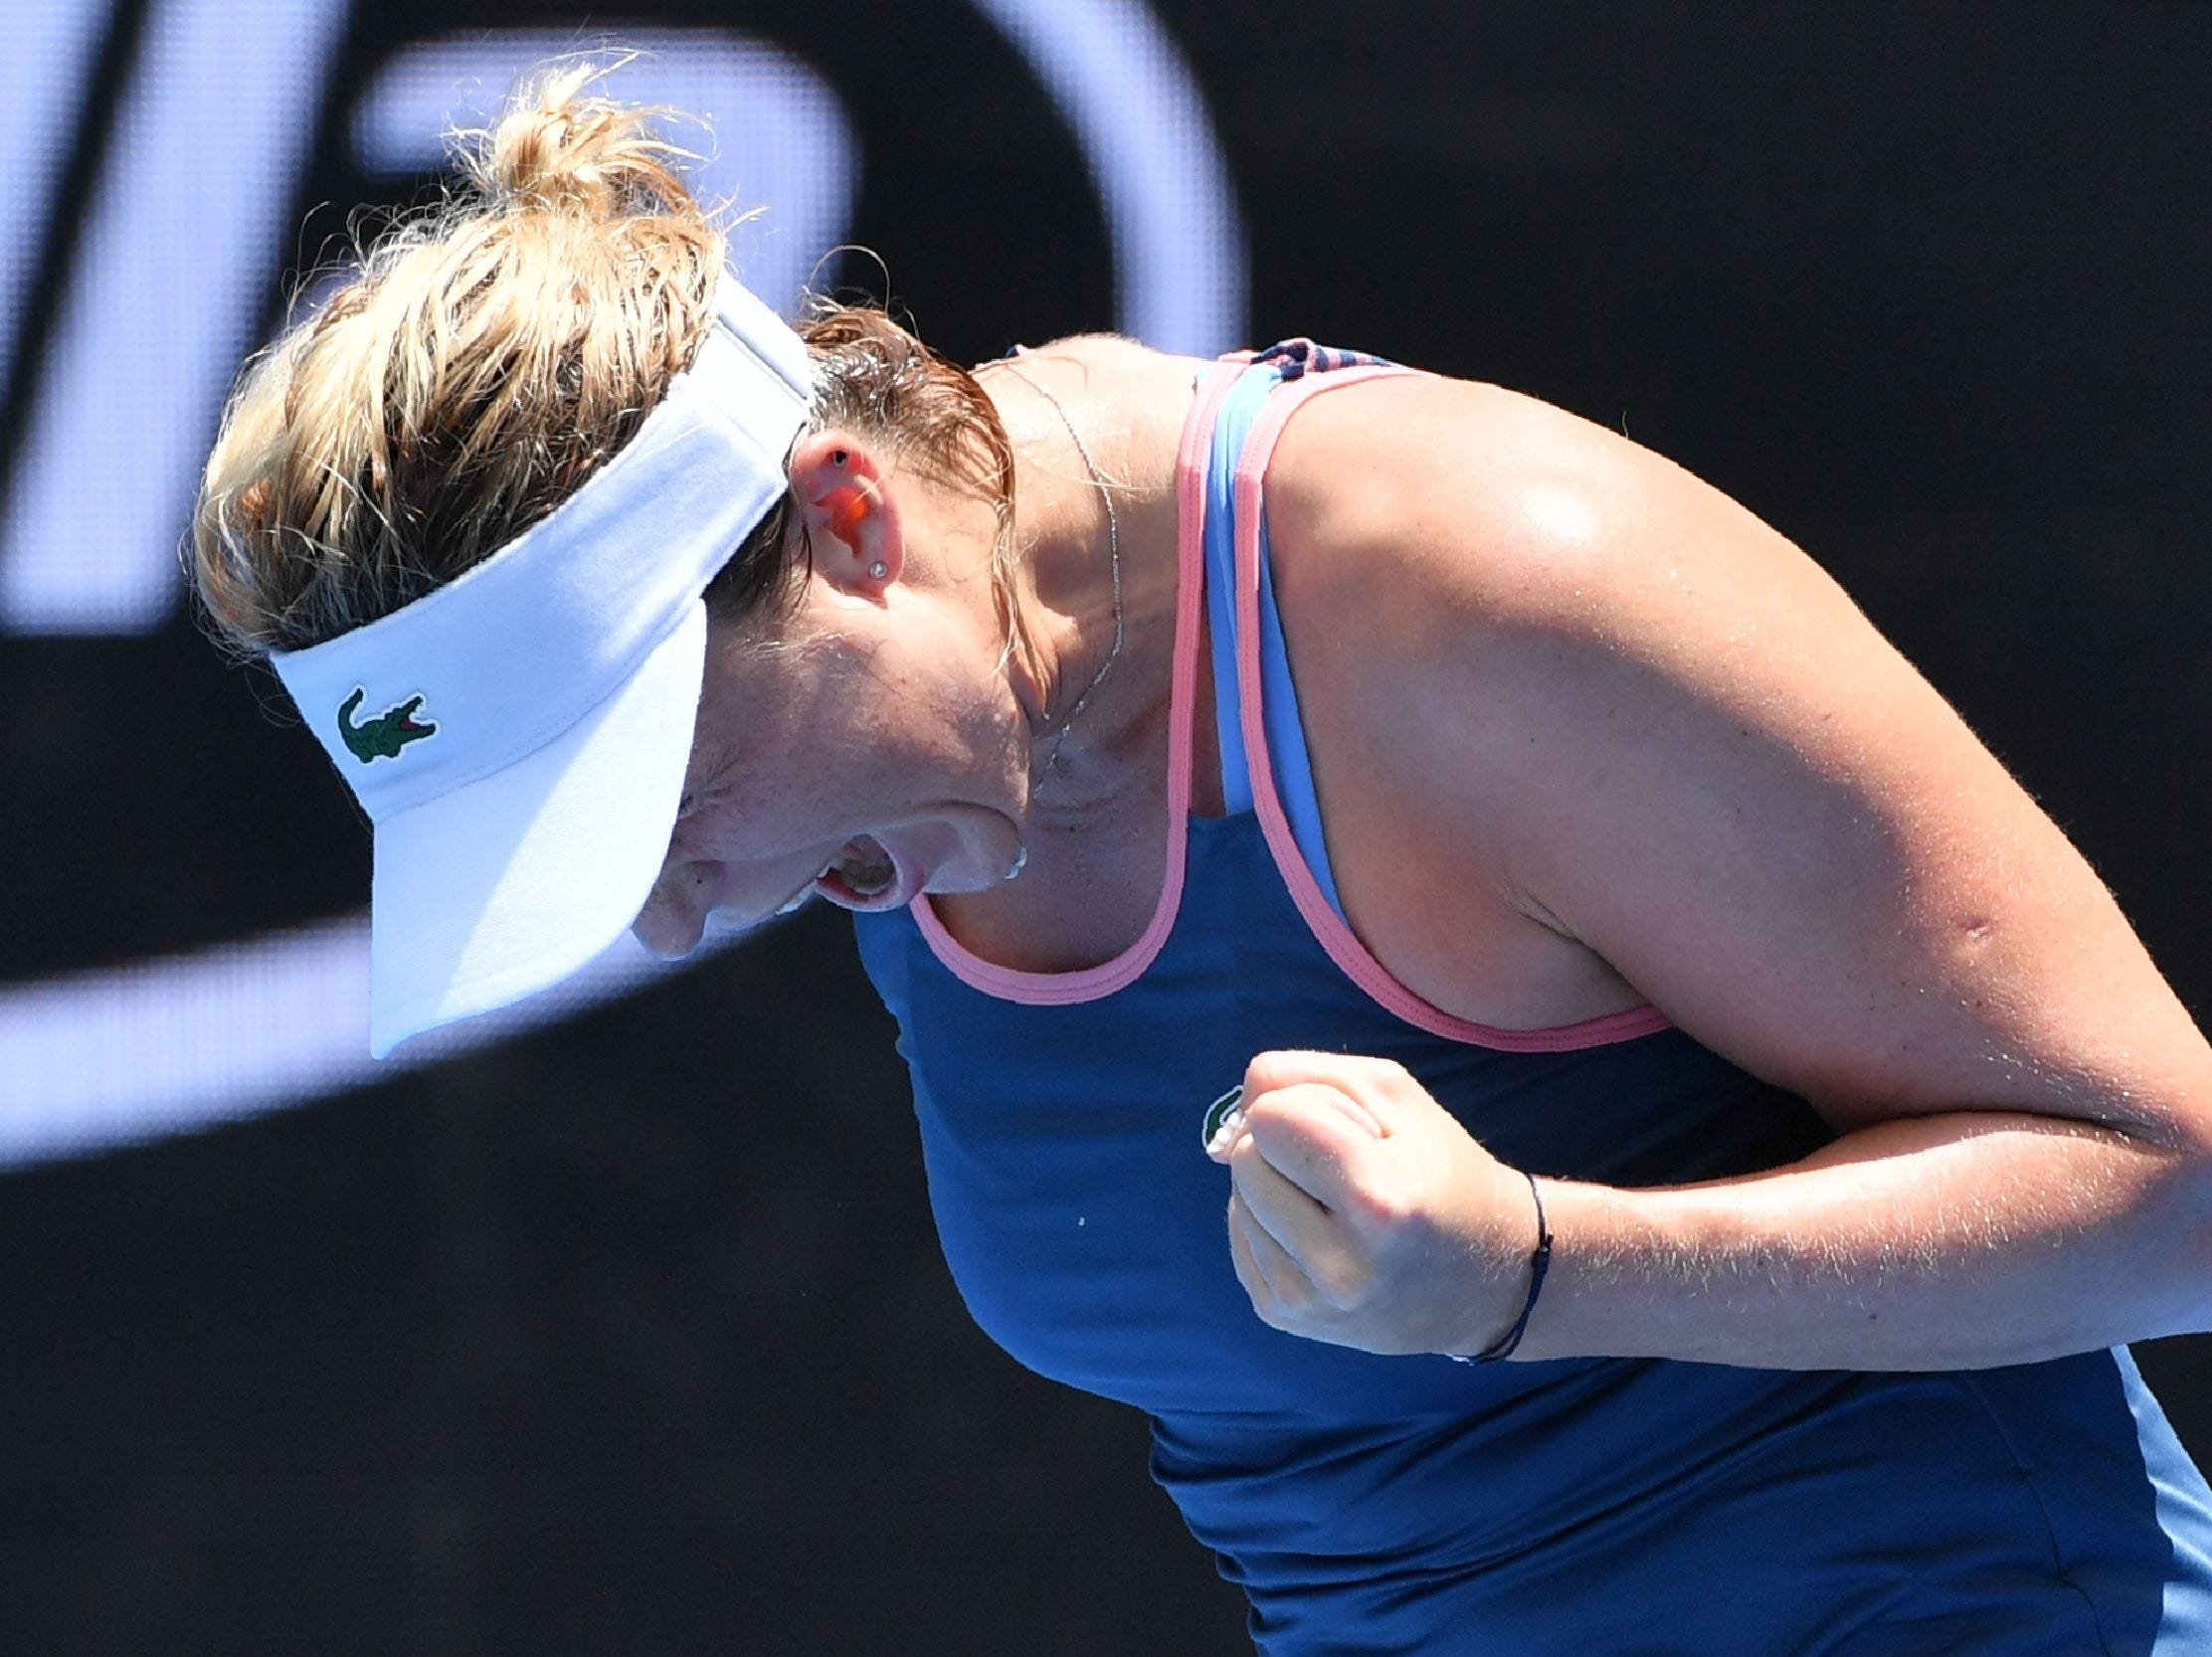 Russia's Anastasia Pavlyuchenkova celebrates after upsetting No. 9 Kiki Bertens 3-6, 6-3, 6-3 in the second round.